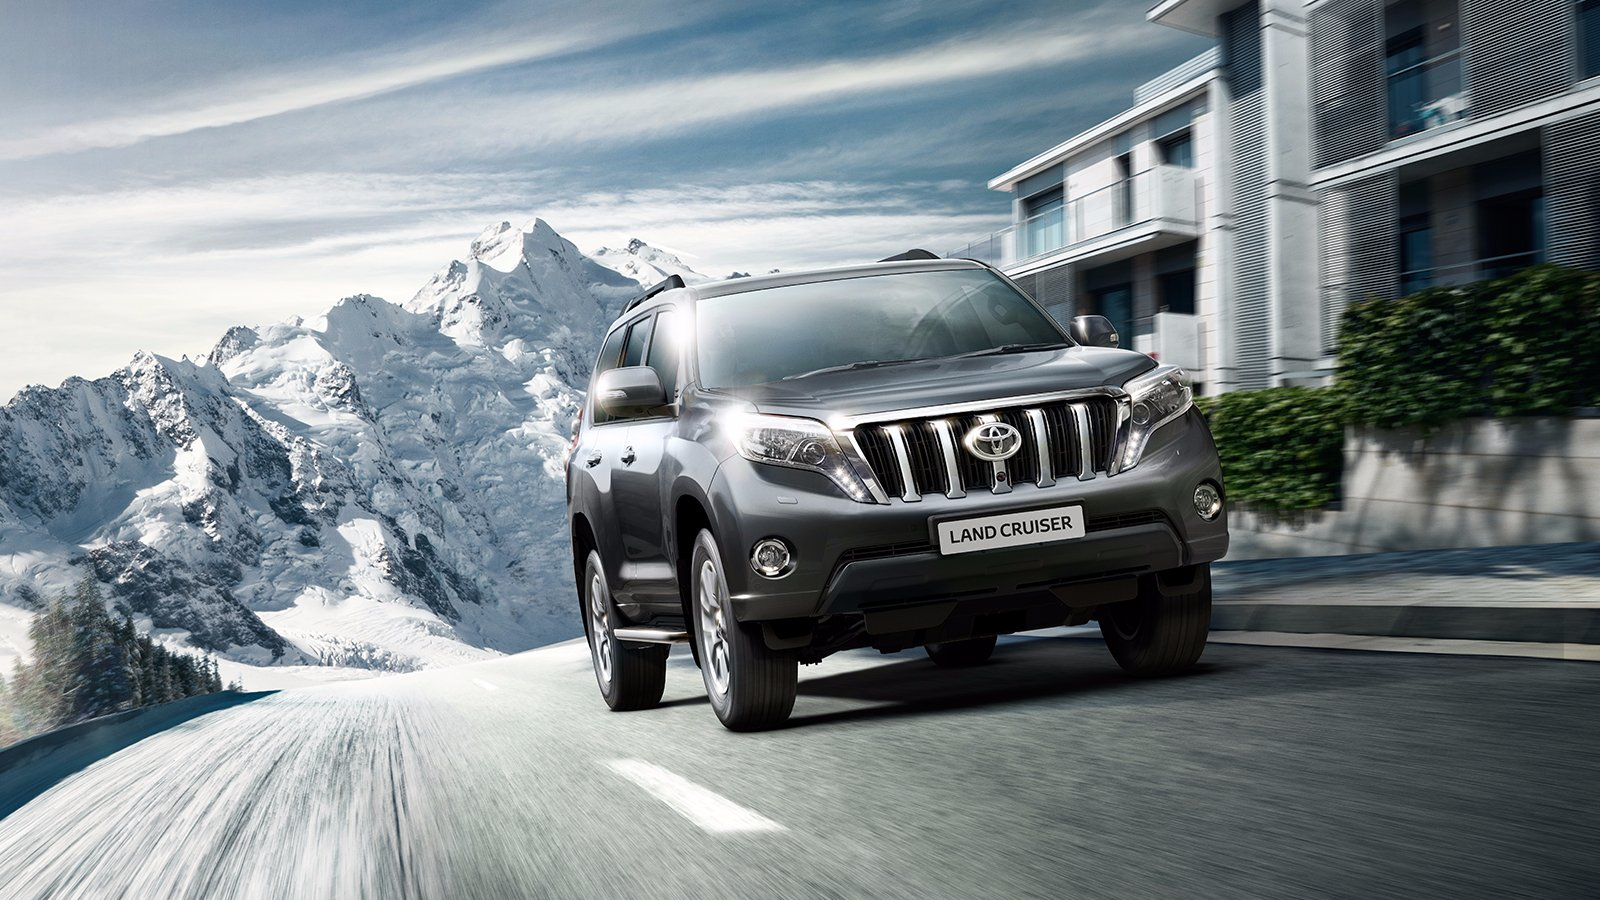 Land Cruiser V8 Overview Features Diesel Toyota Europe